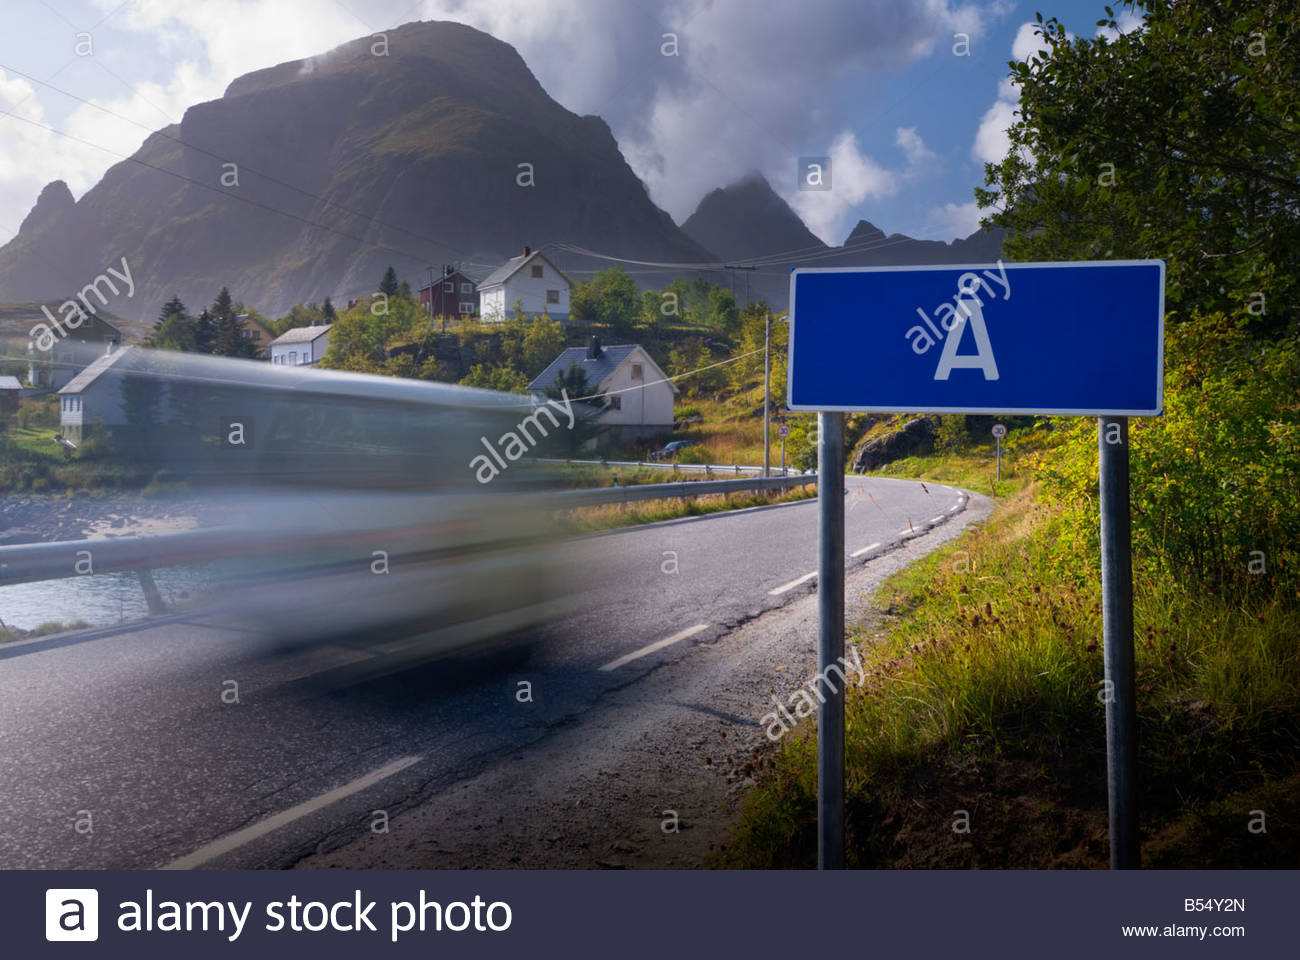 The roadsign for Å, a village in the Lofoten Islands, Norway, notable for its incredibly short name. - Stock Image